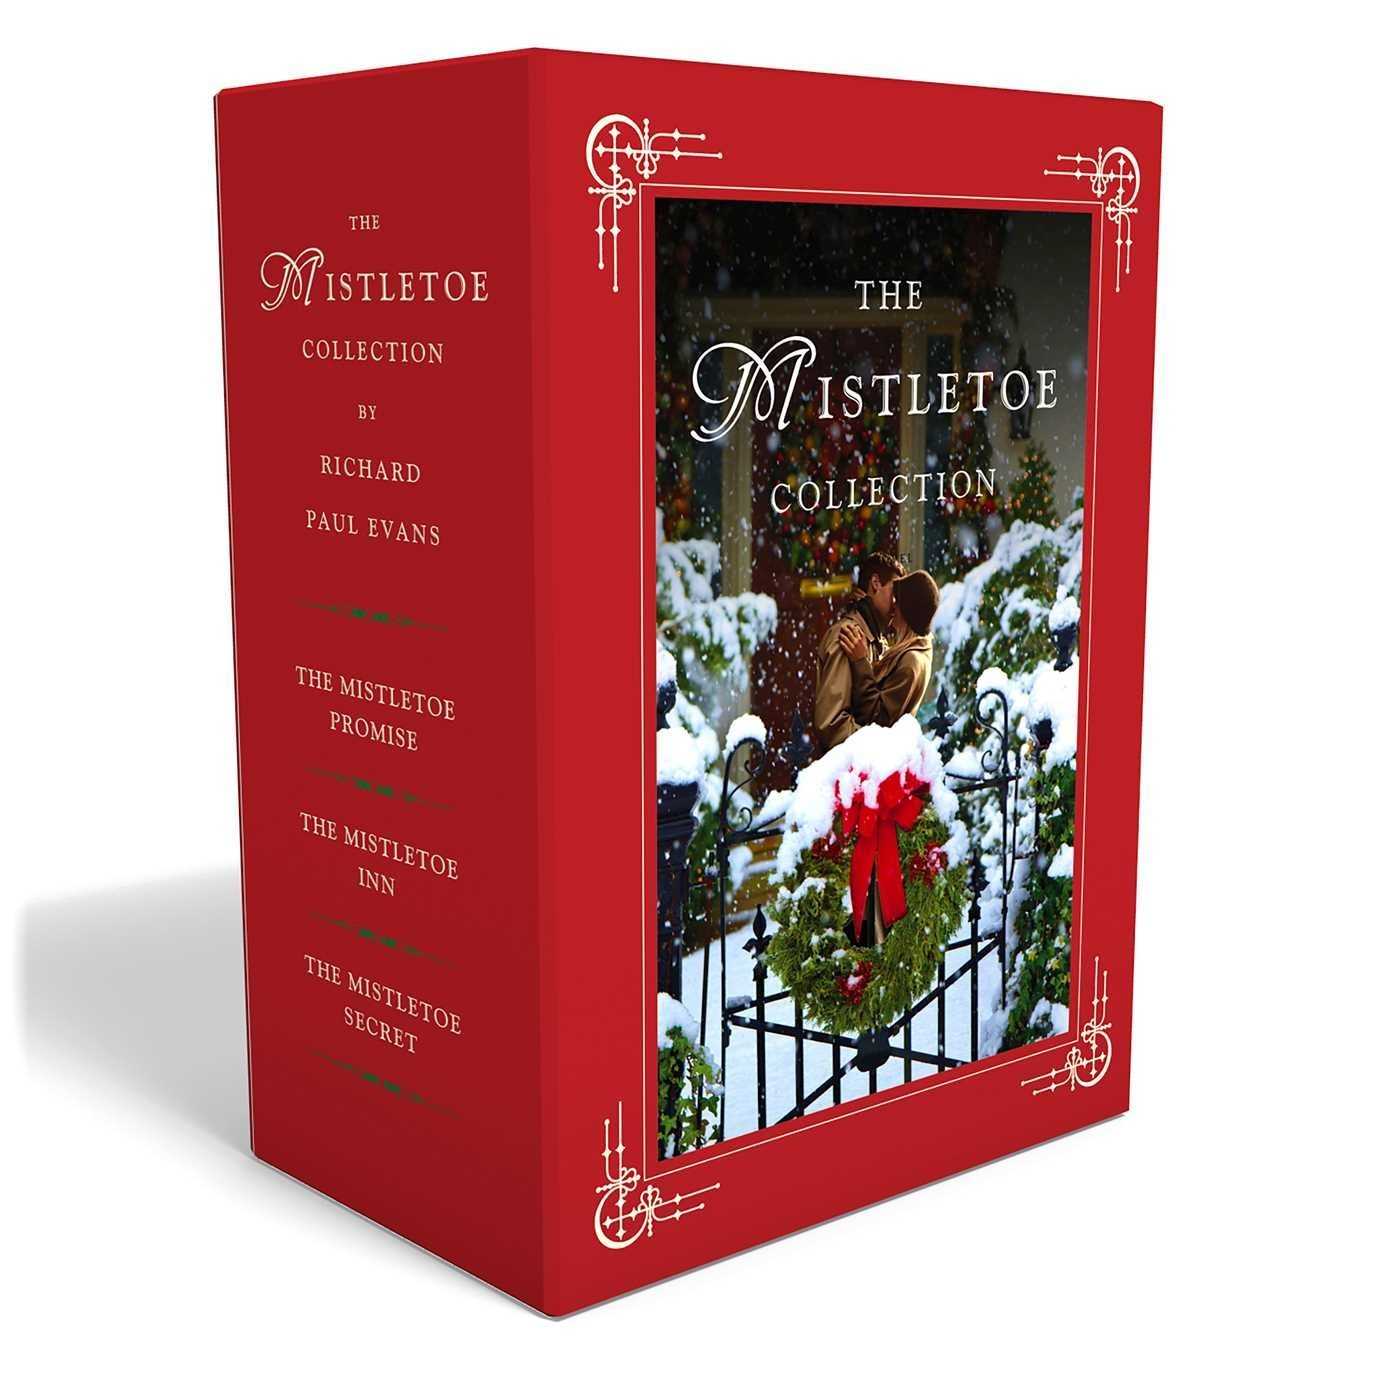 Mistletoe Collection - The Mistletoe Christmas Novel Box Set: The Mistletoe Promise, The Mistletoe Inn, and Untitled Christmas Book